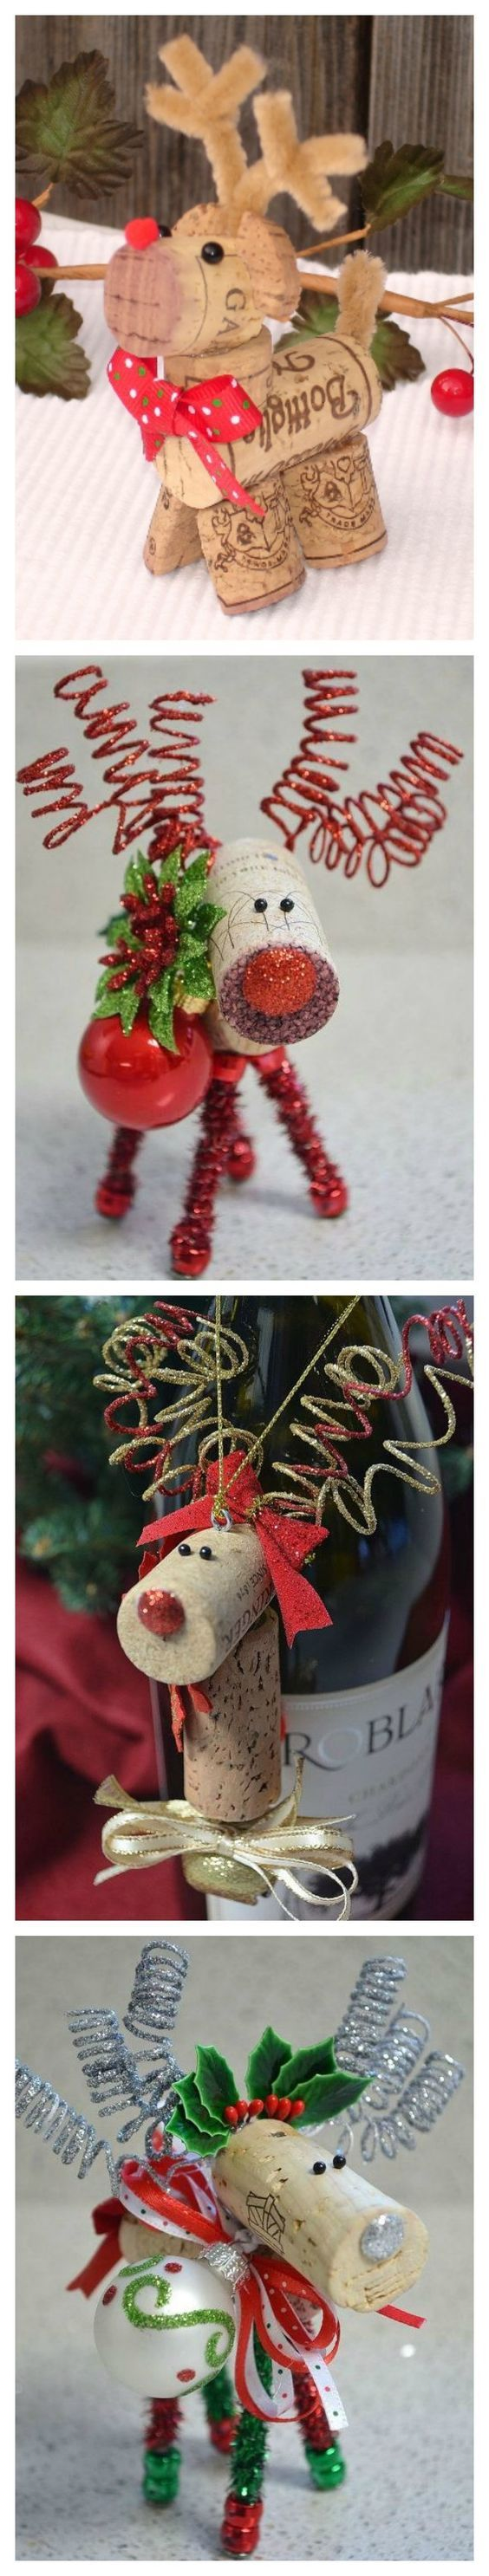 33+ Christmas craft party ideas for adults information